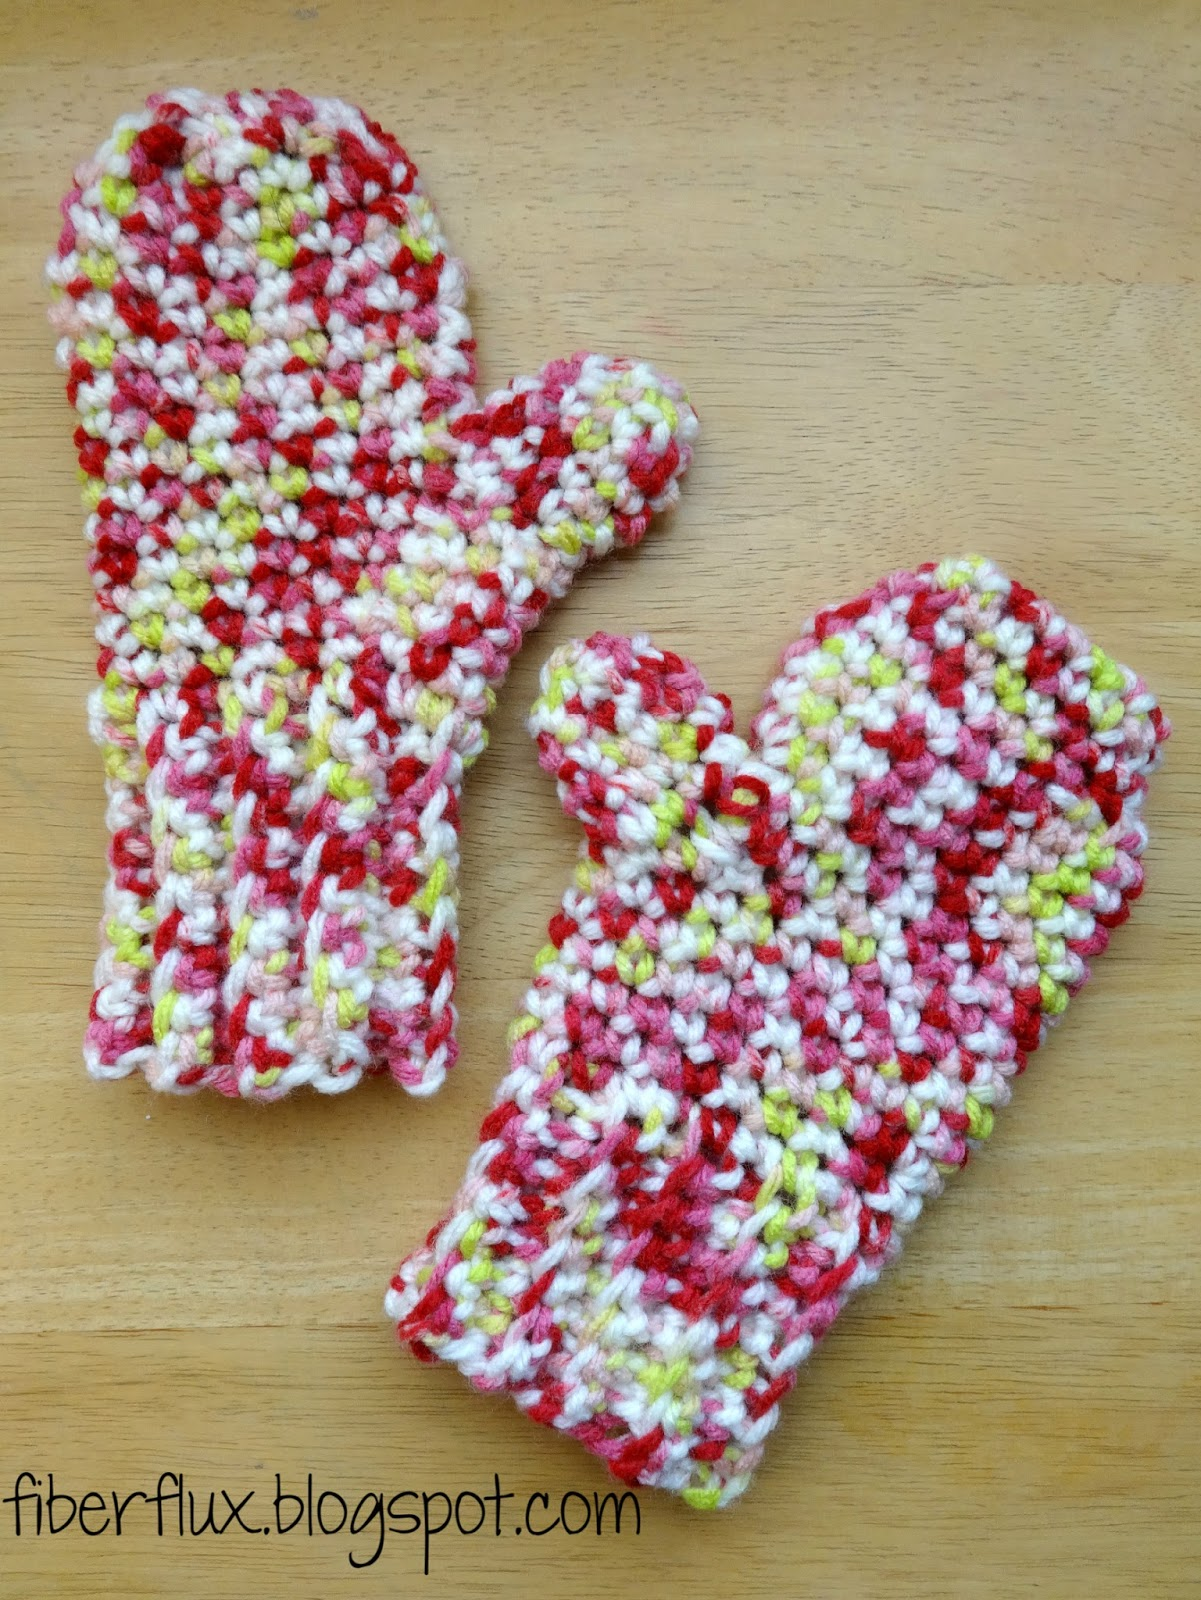 Fiber Flux: Latest Charity Project...Mittens for Detroit!